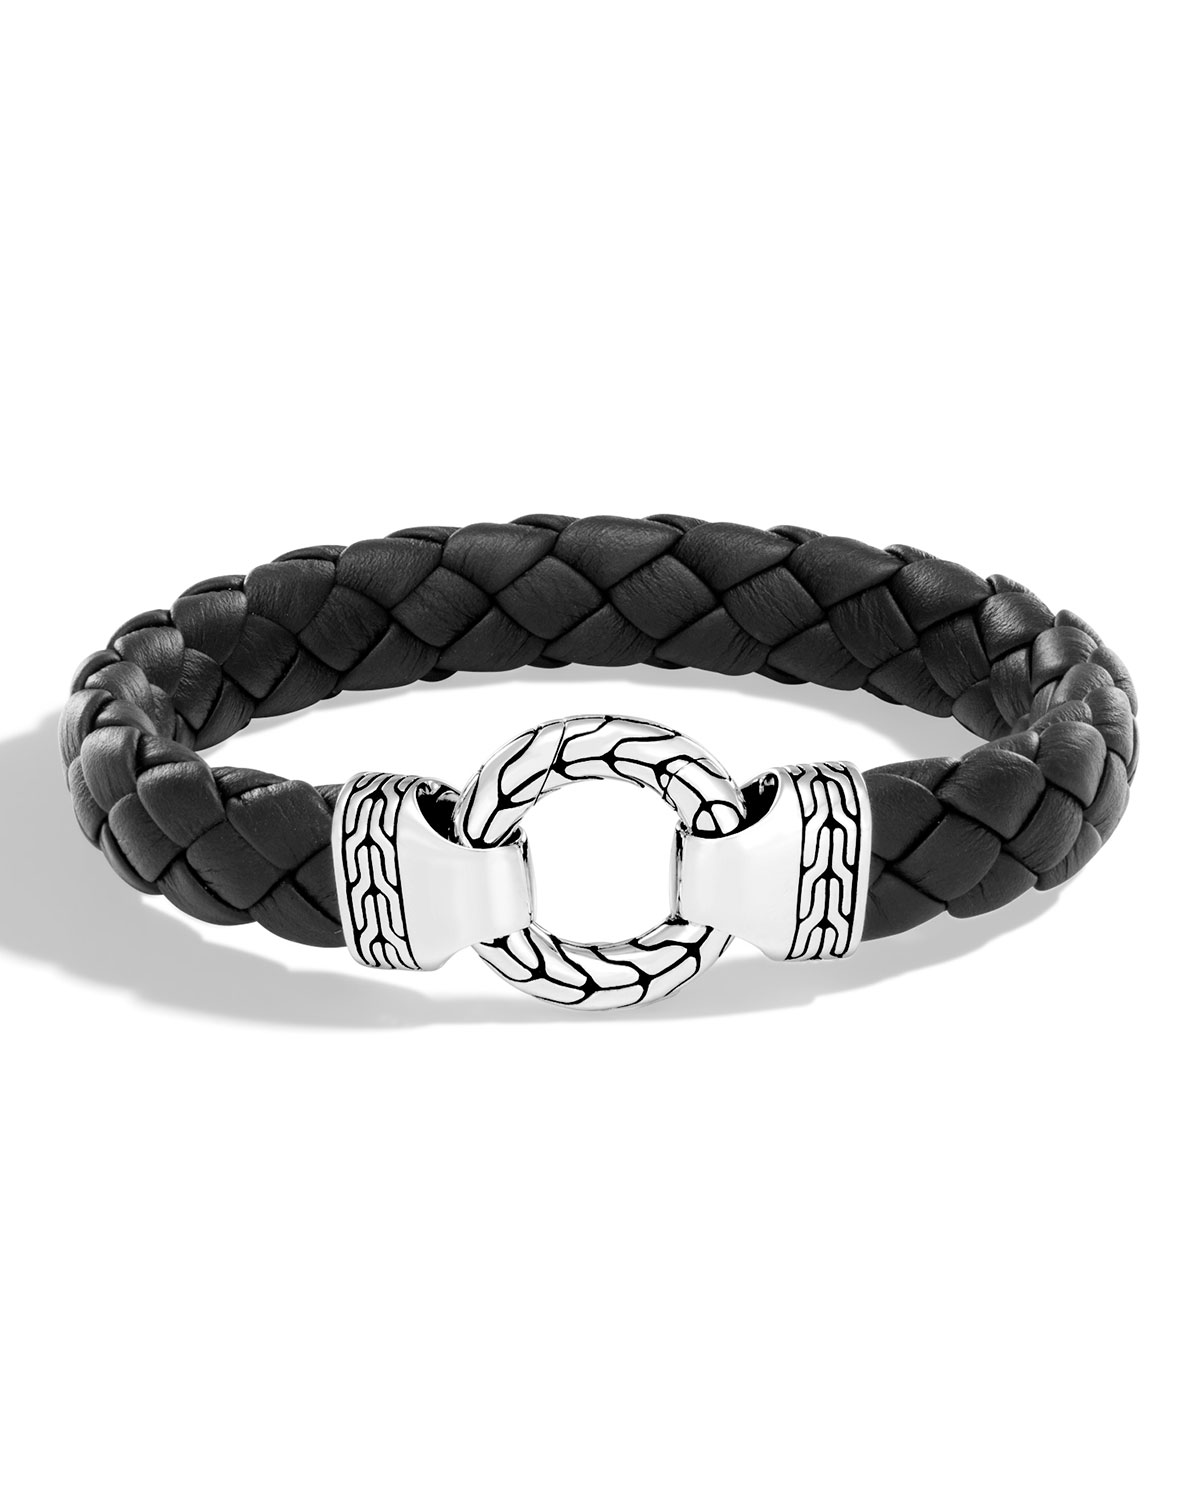 John Hardy Men's Classic Chain Braided Leather Bracelet